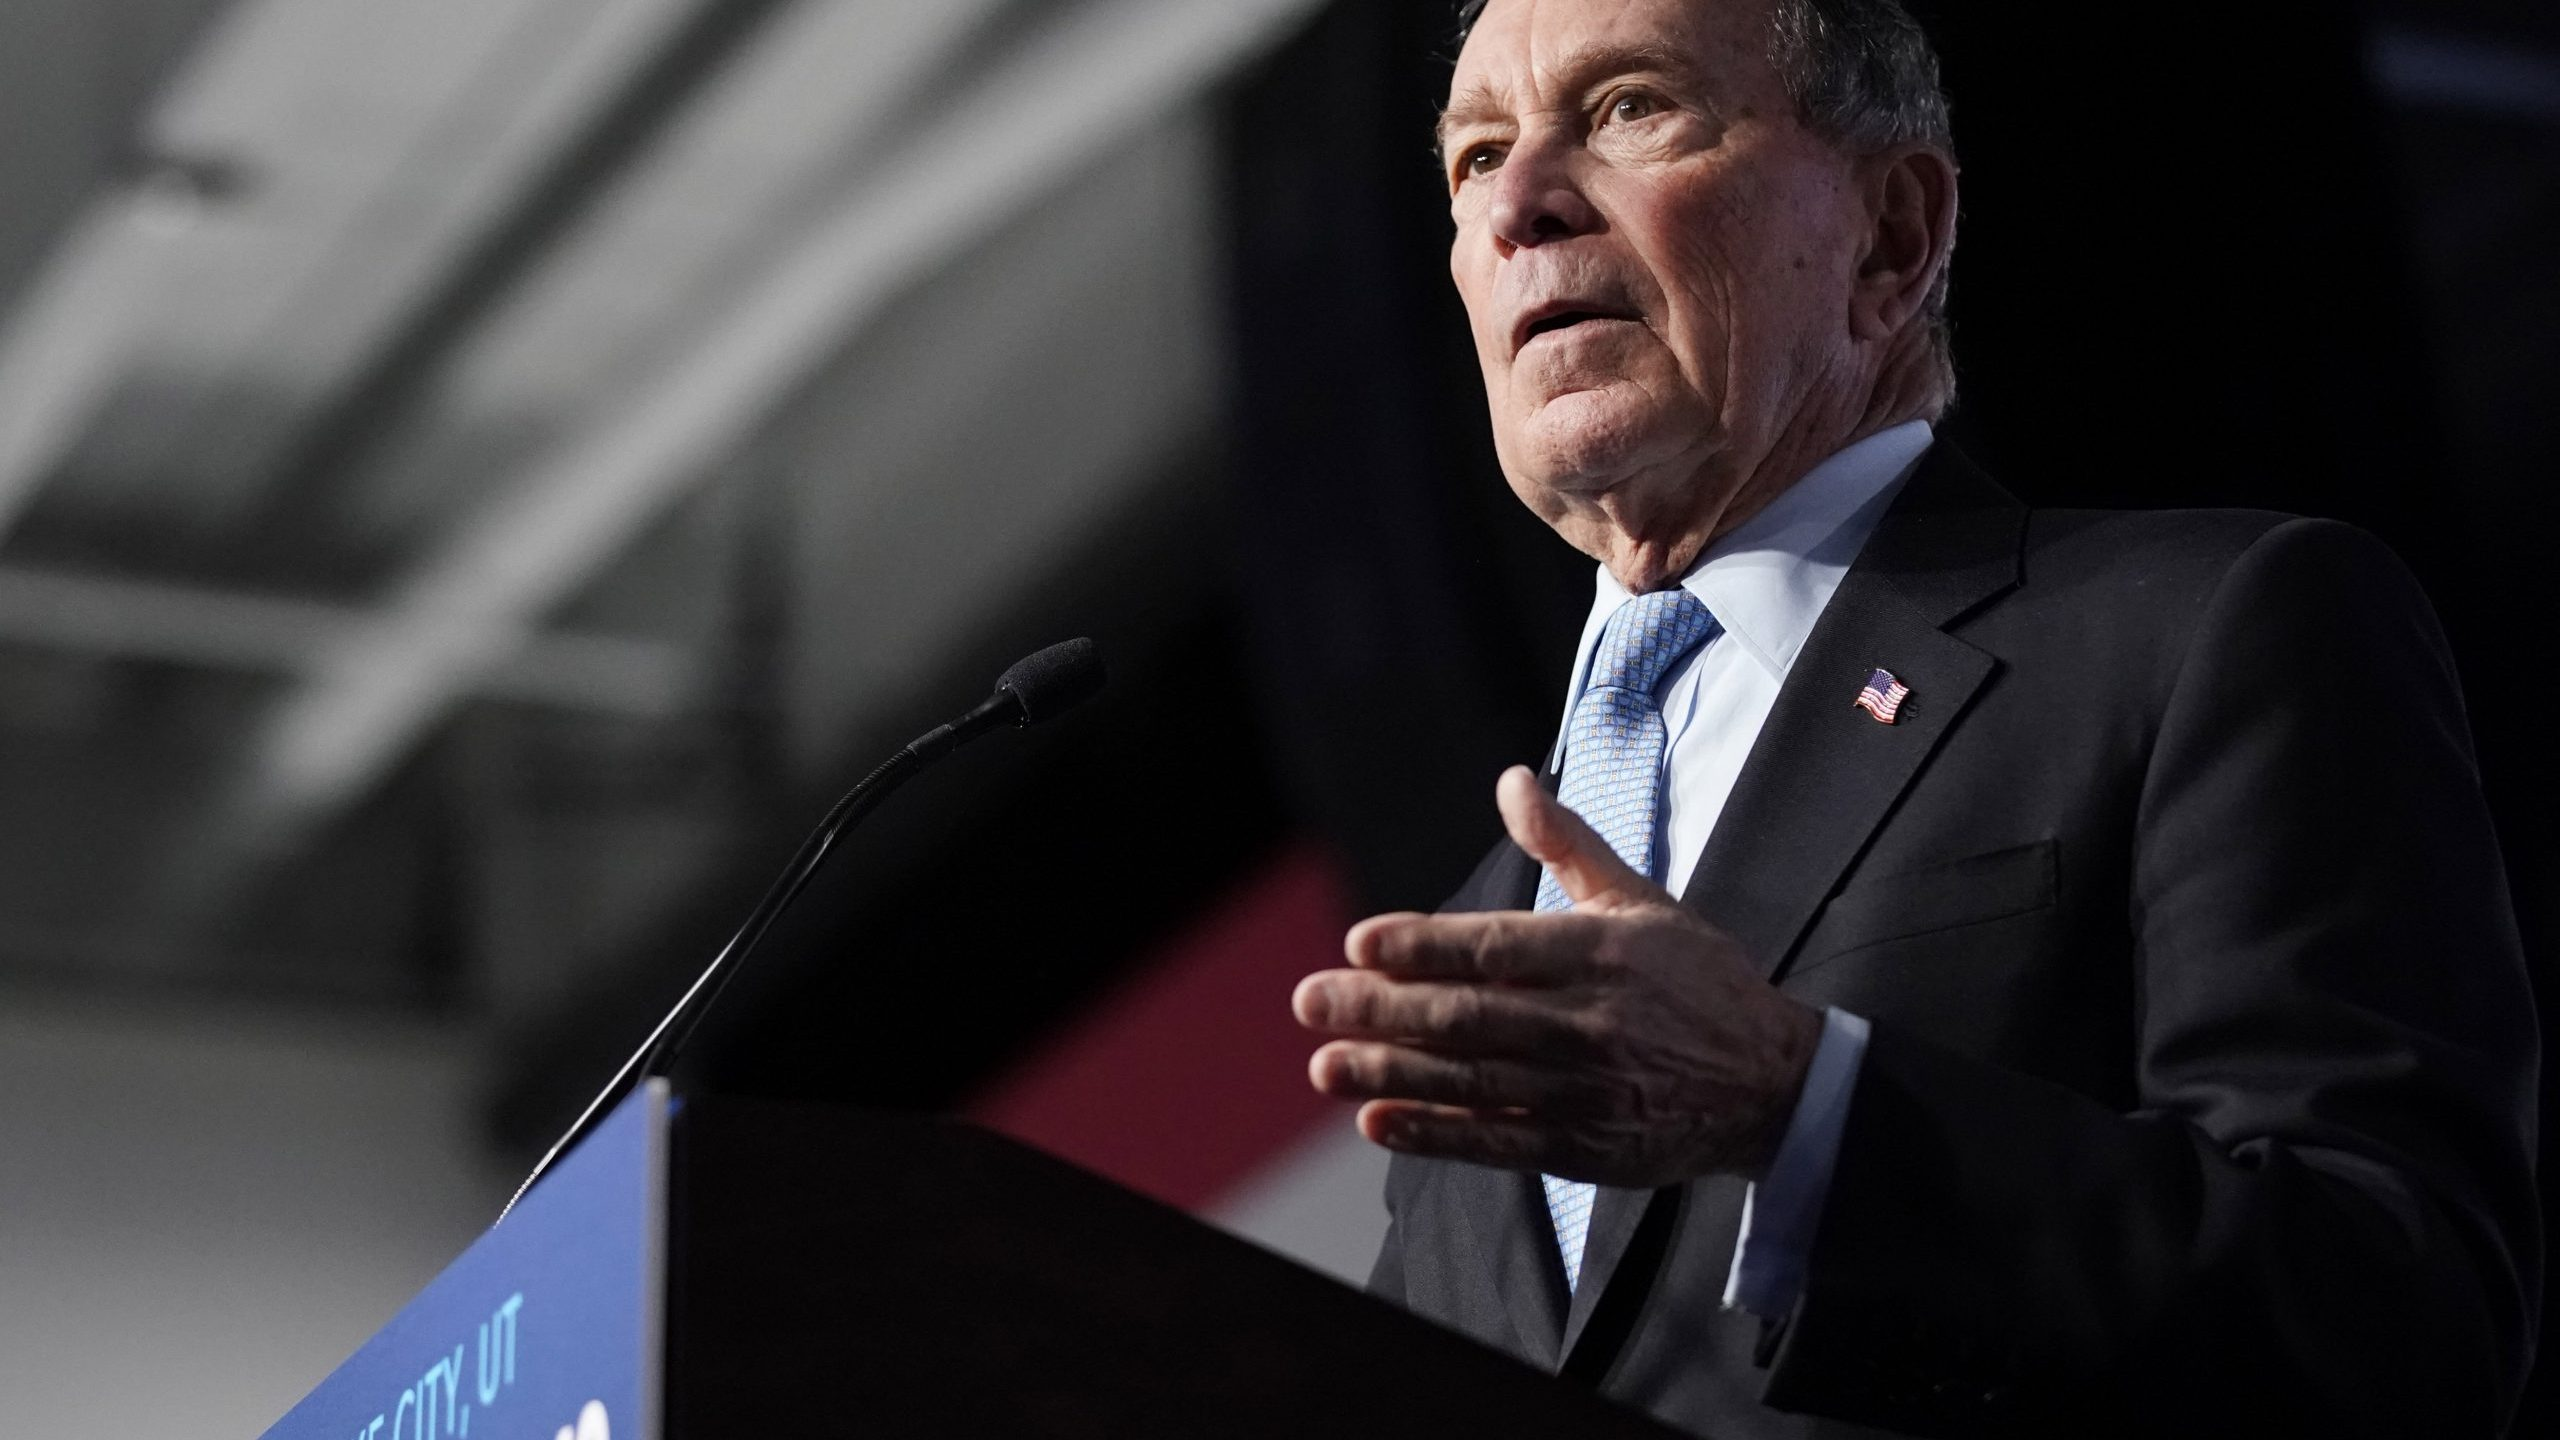 Democratic presidential candidate, former New York City Mayor Mike Bloomberg speaks to supporters at a rally on Feb. 20, 2020, in Salt Lake City, Utah. (Credit: George Frey/Getty Images)